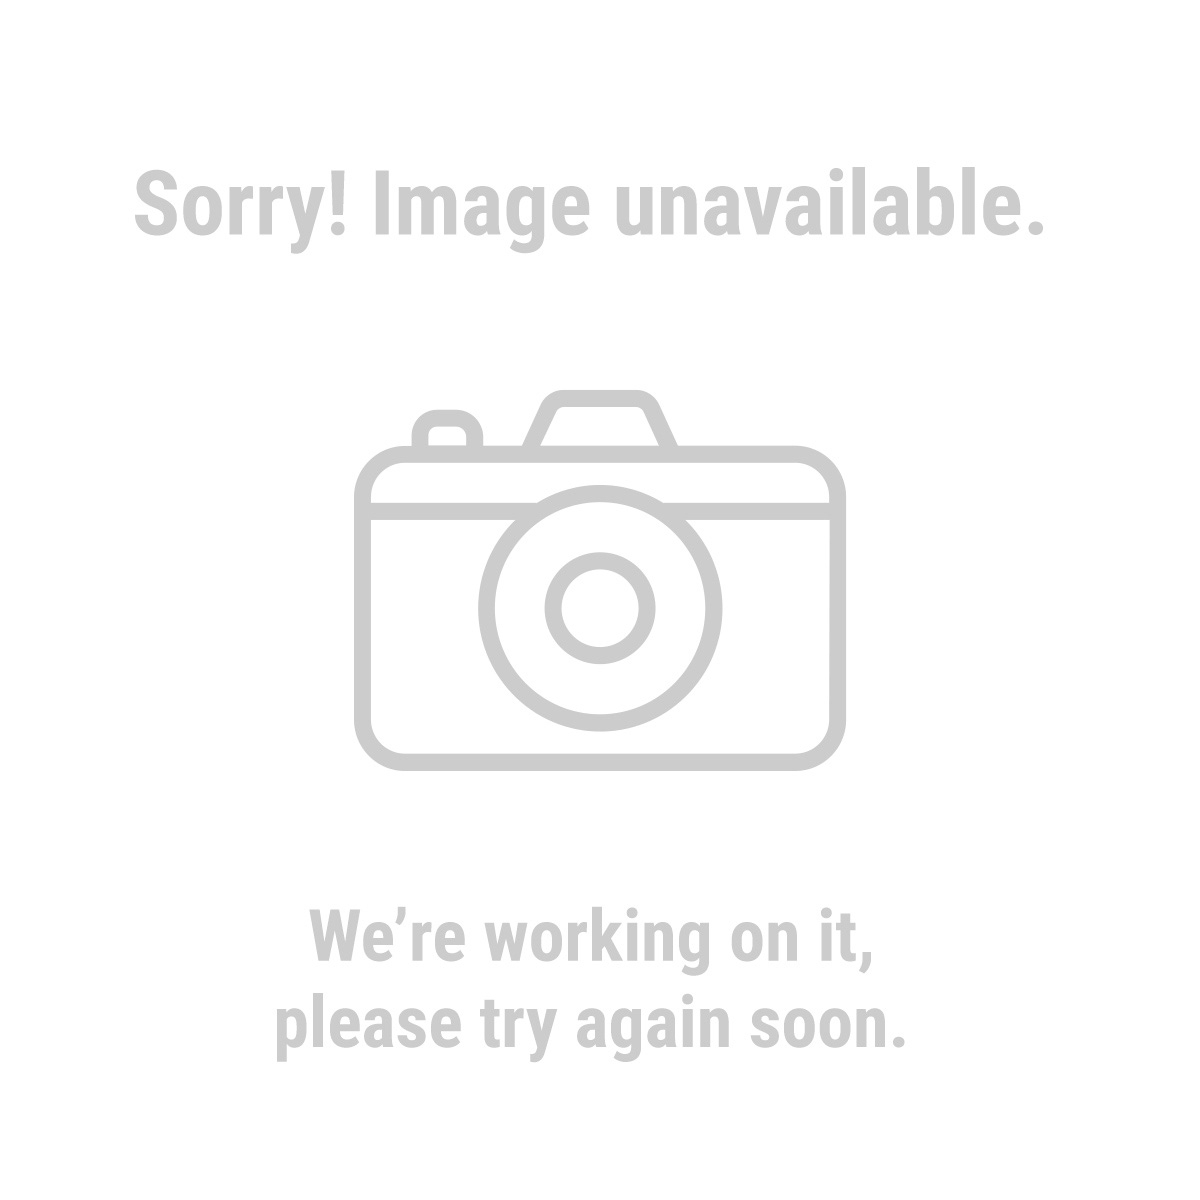 Haul-Master® 47698 1/4'' x 35 Ft. Chain Coil